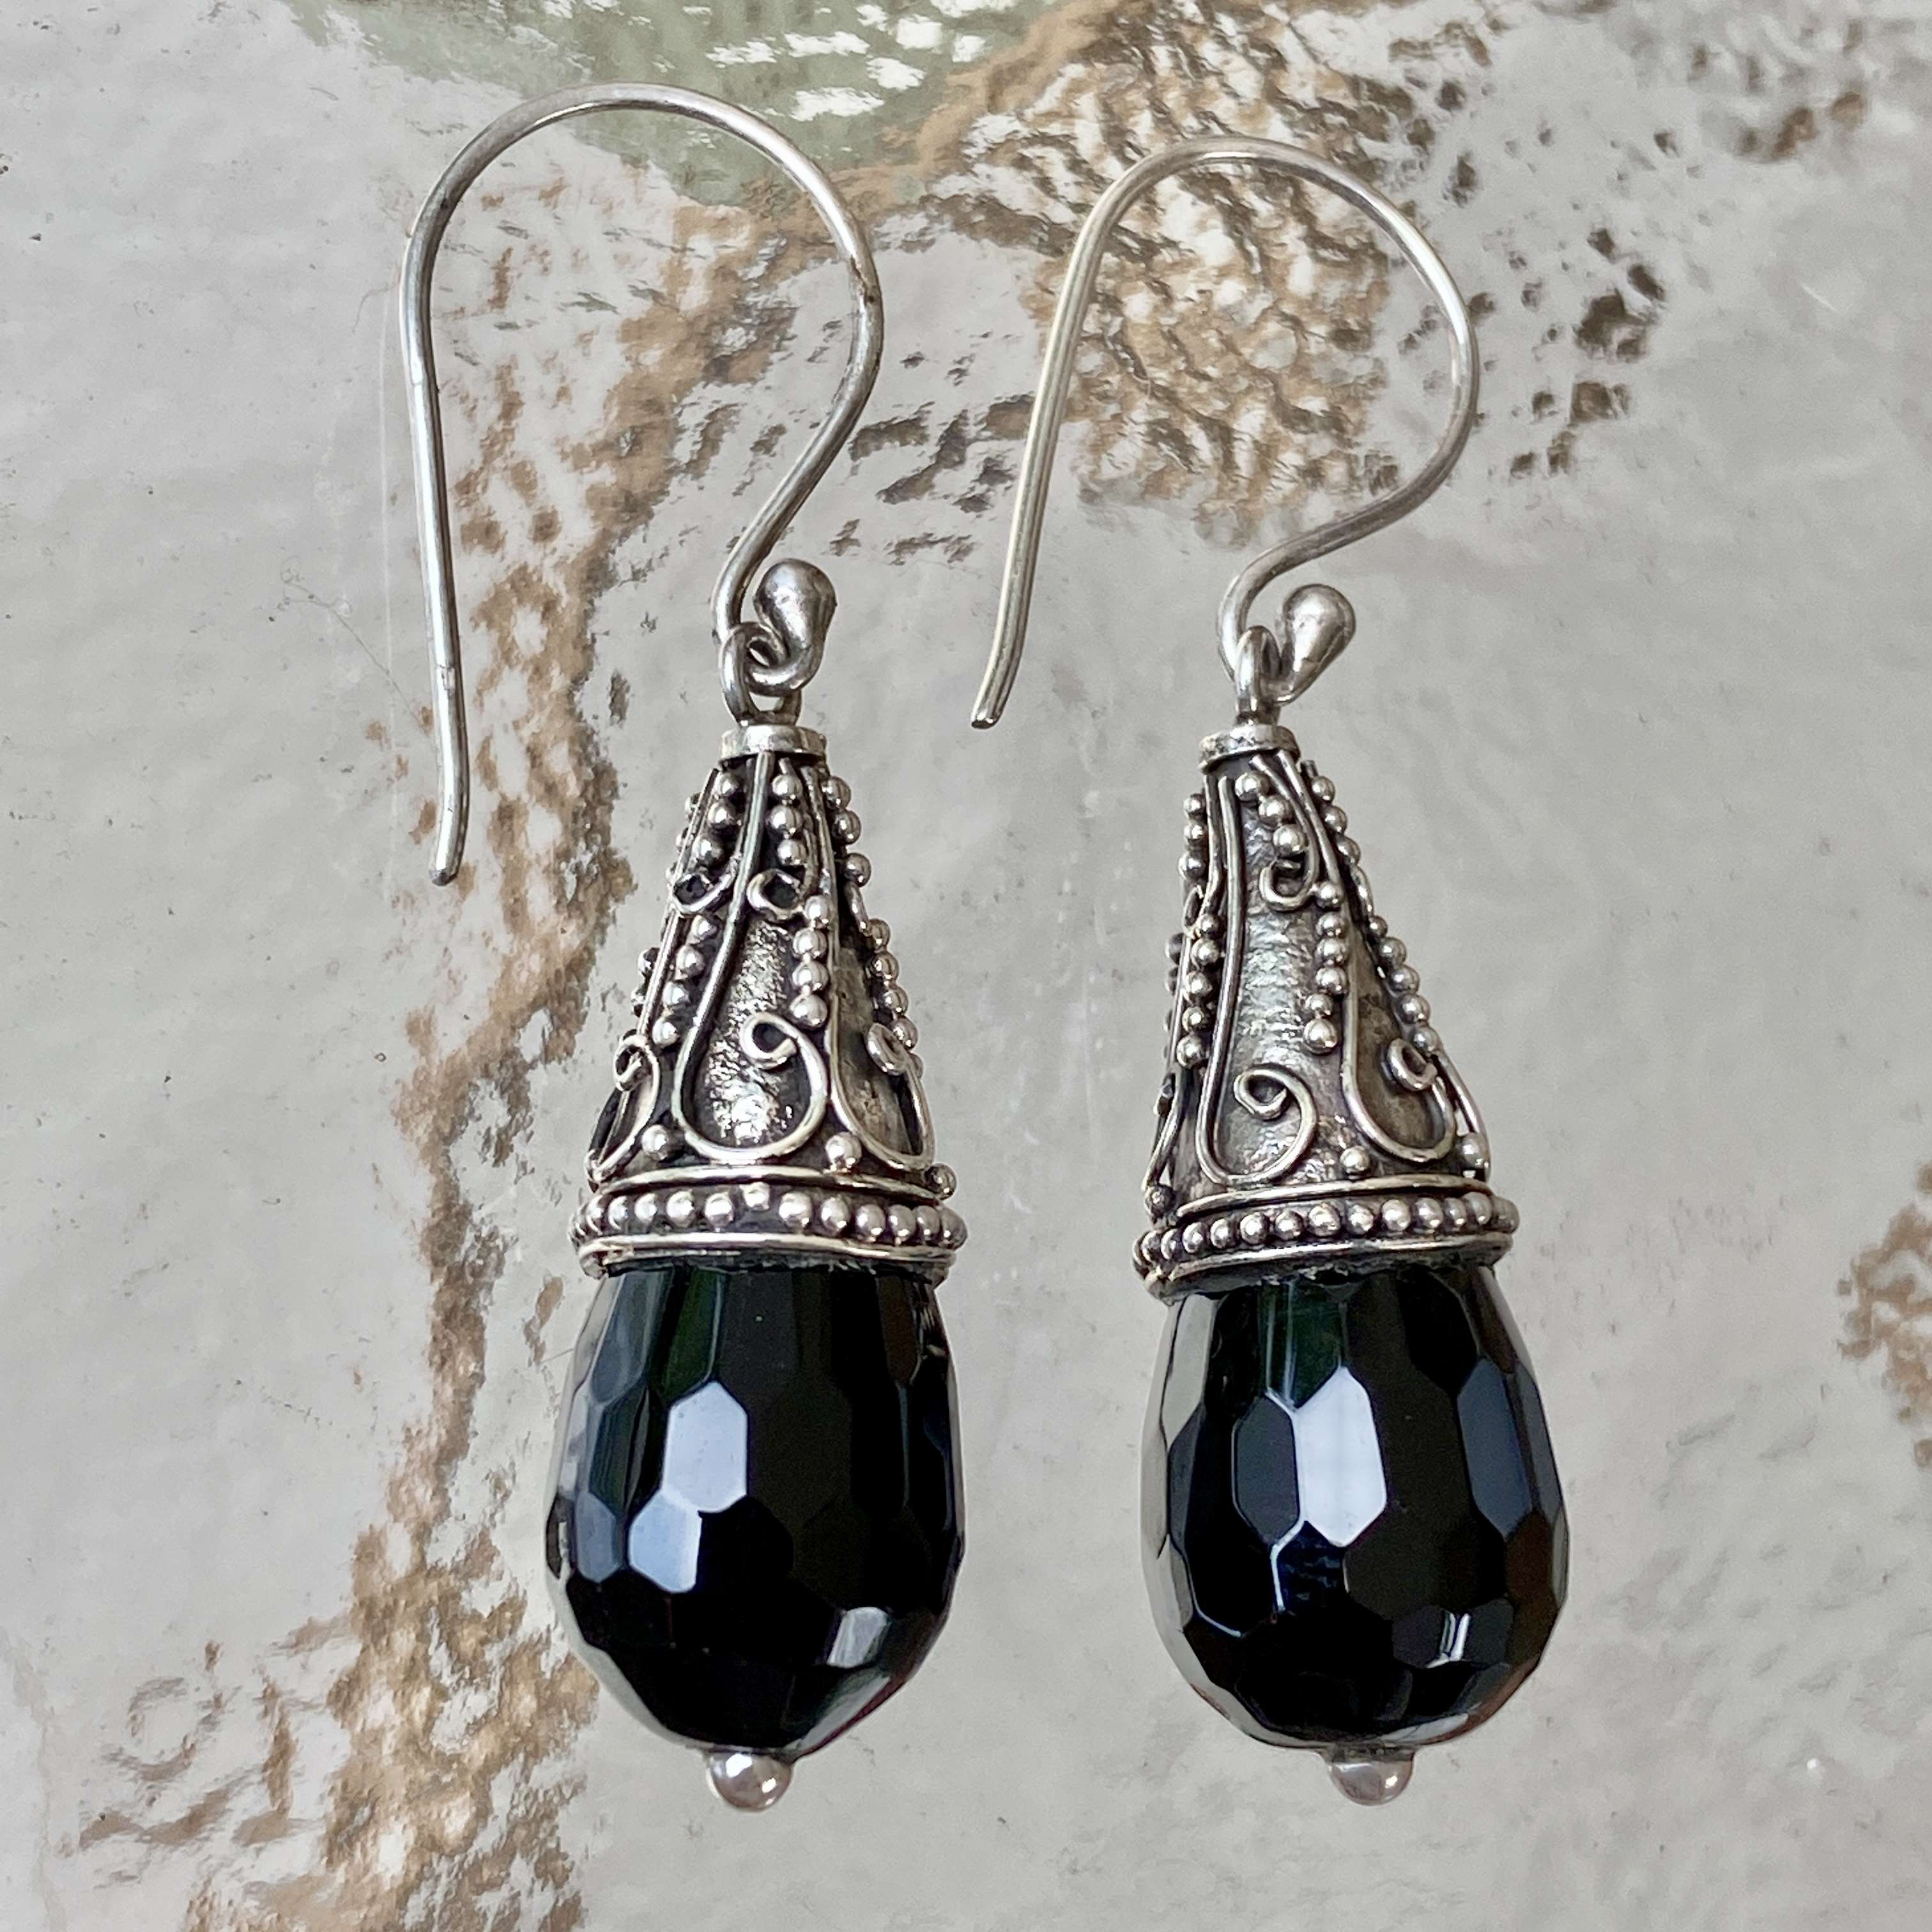 (HANDMADE 925 BALI STERLING SILVER EARRINGS WITH ONYX)